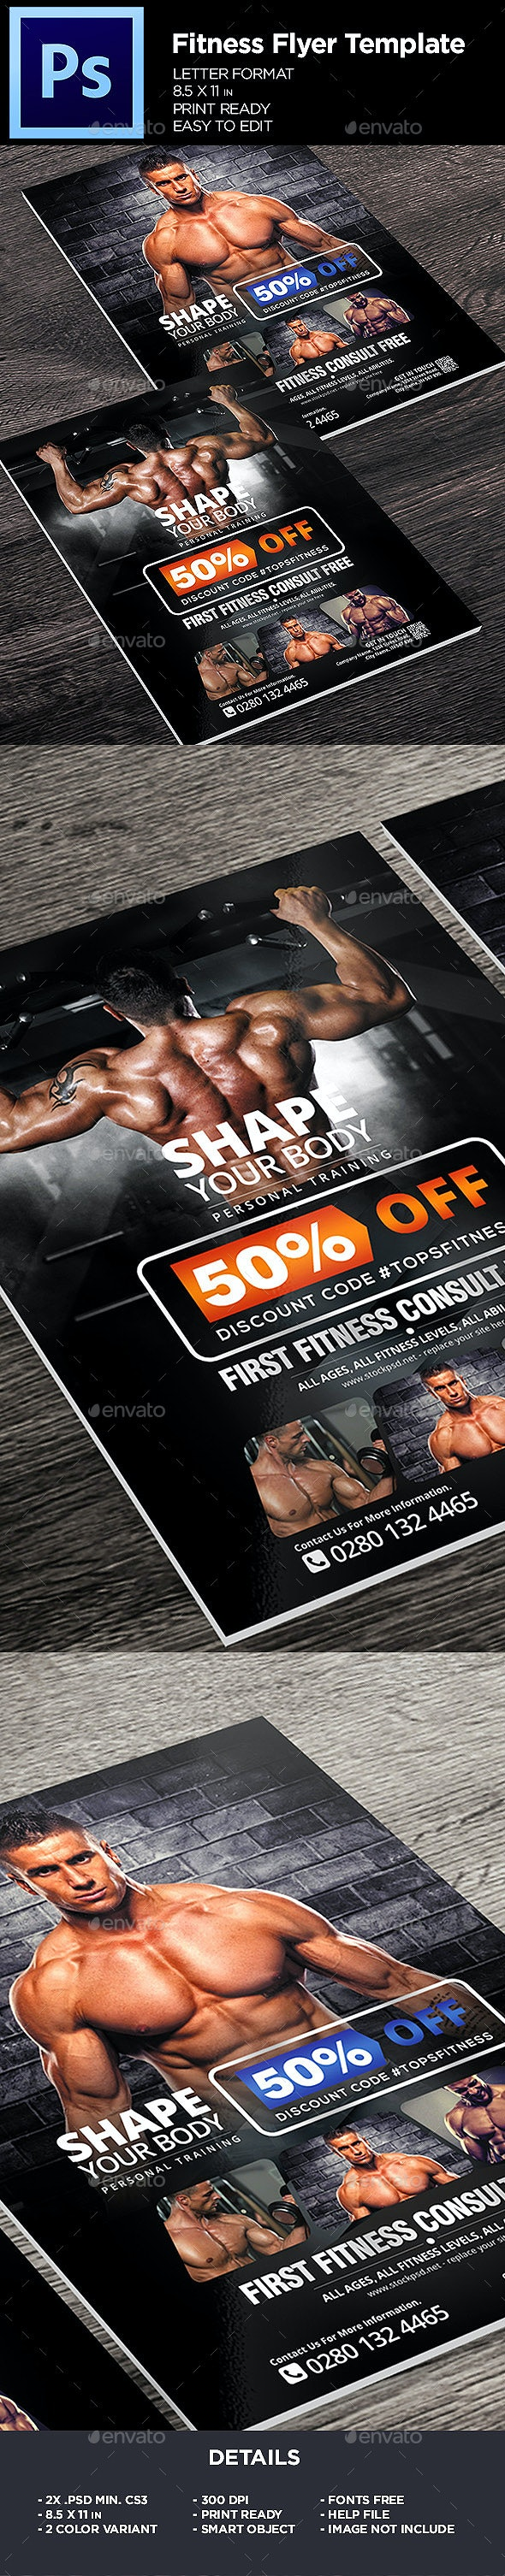 Fitness Flyer - Gym Business Flyer Template - Sports Events